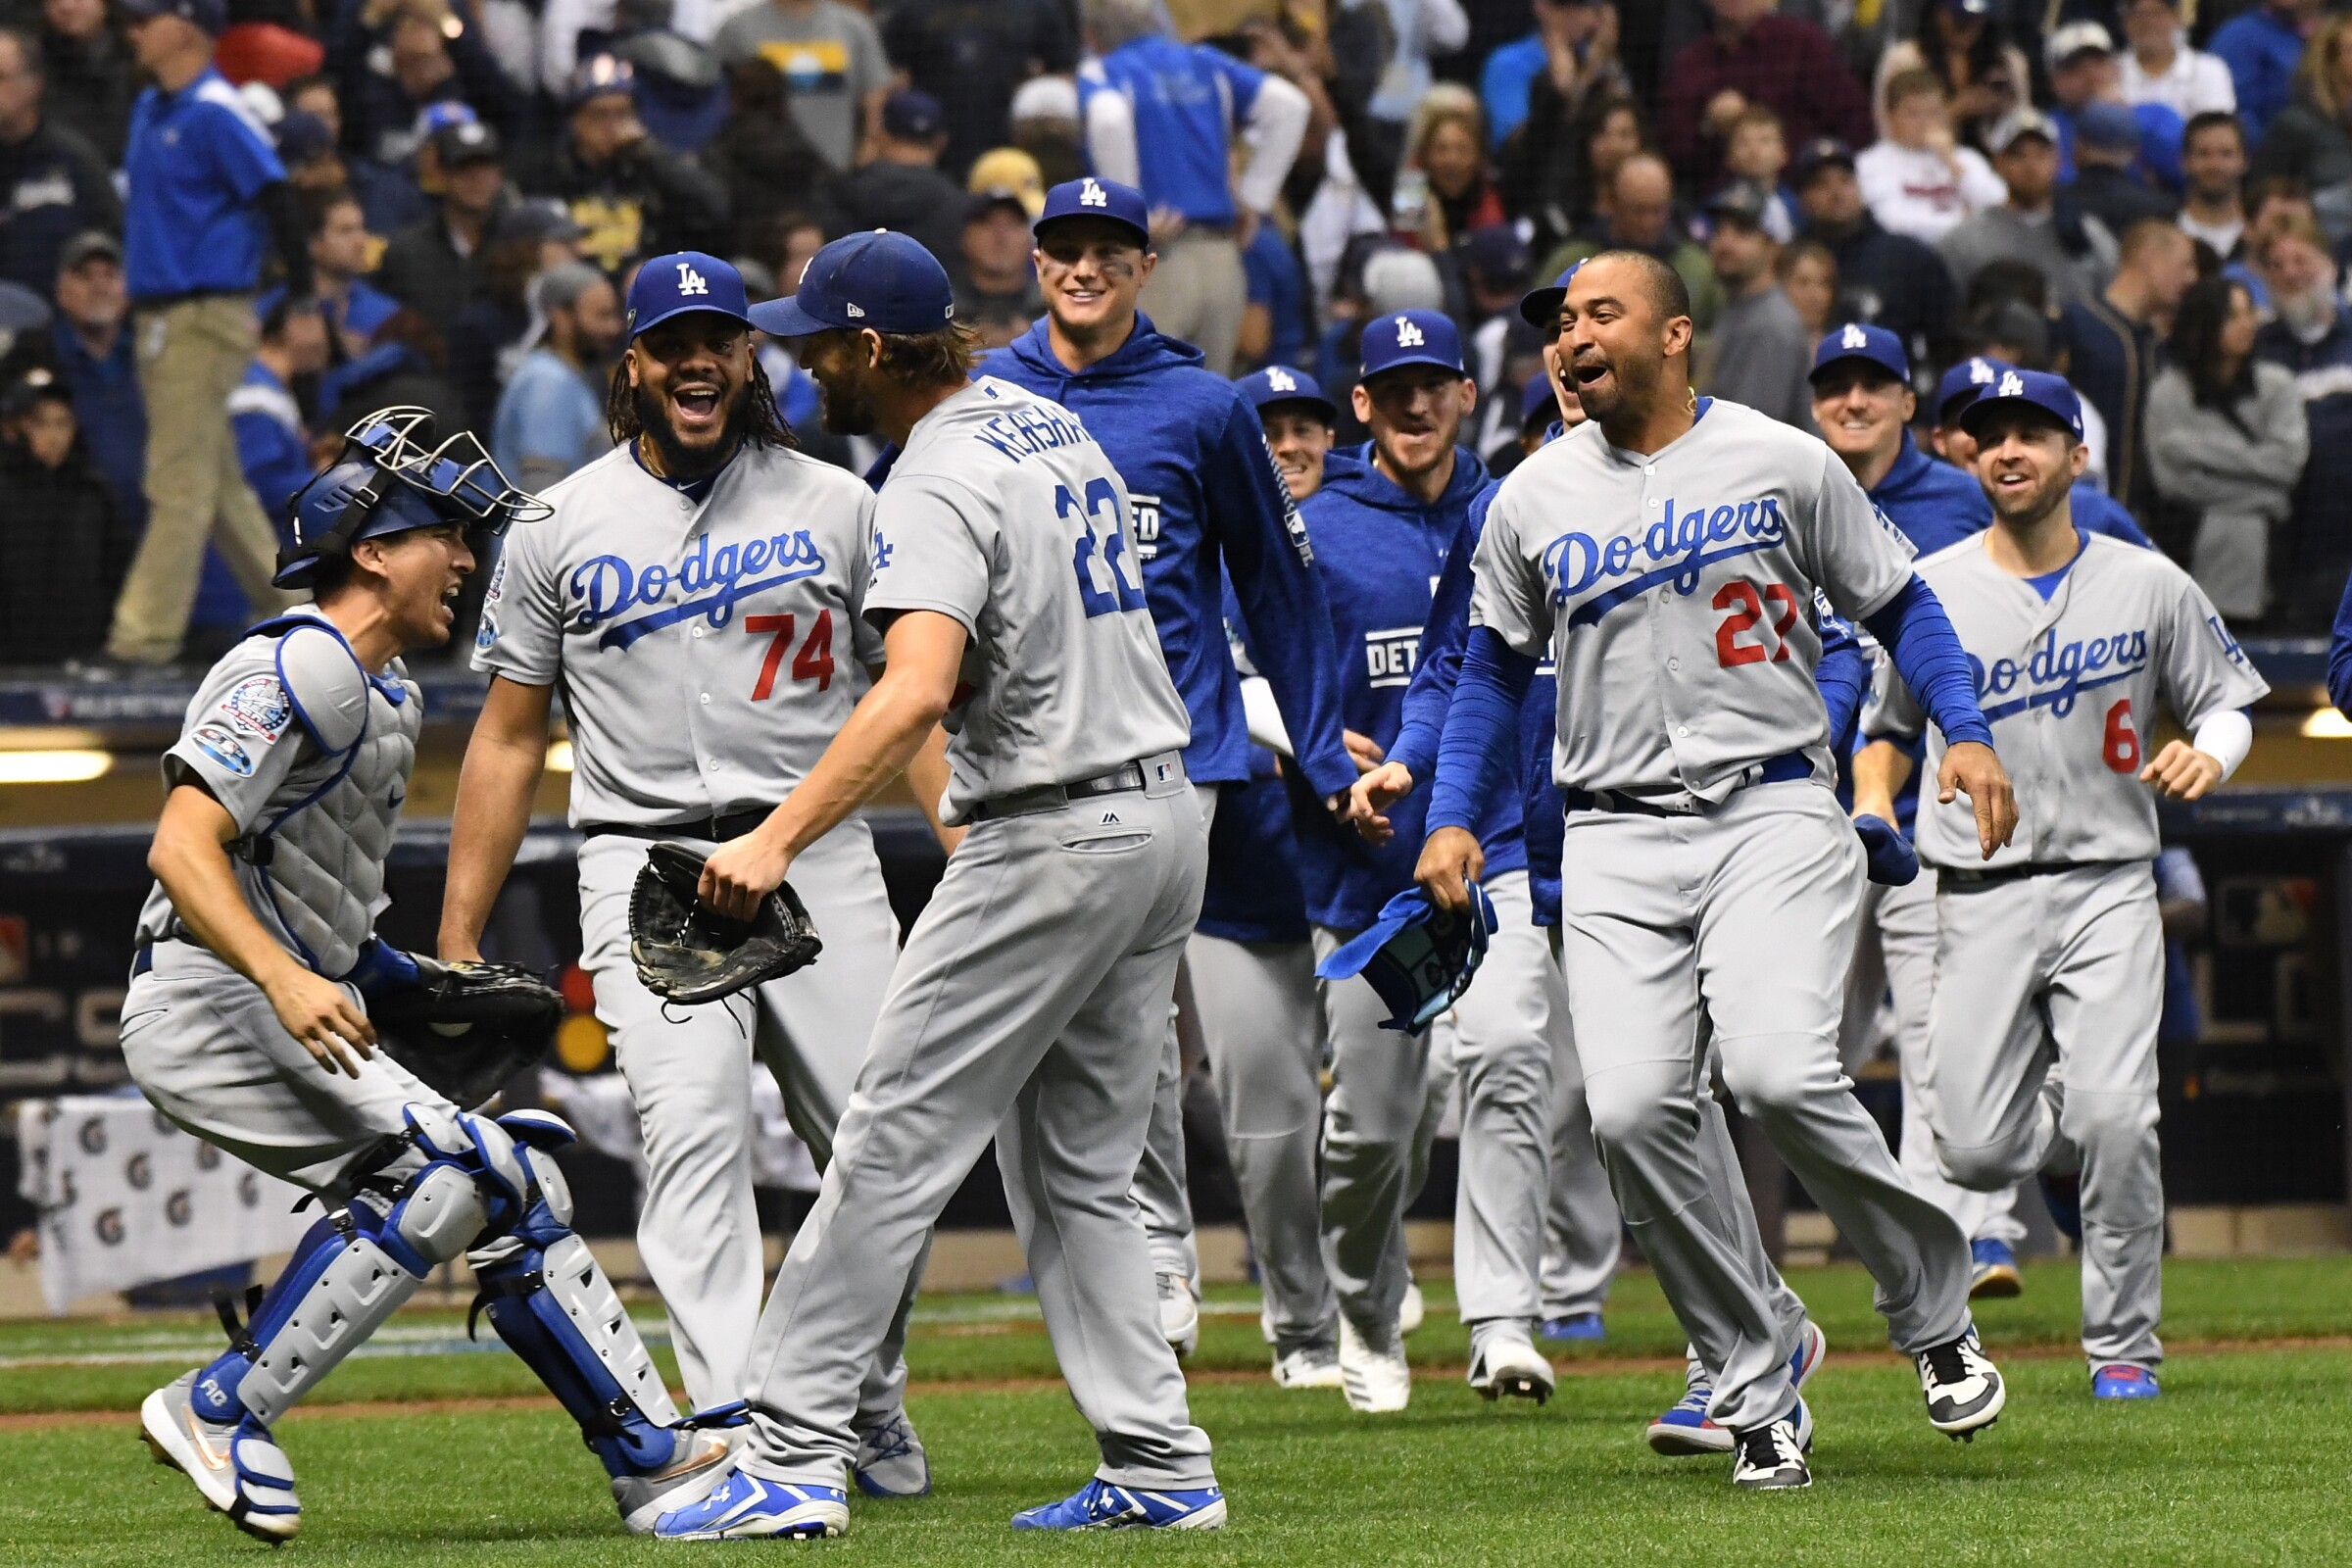 Dodgers teammates (from left) Austin Barnes, Kenley Jansen and Clayton Kershaw celebrate after winning the 2018 NLCS.